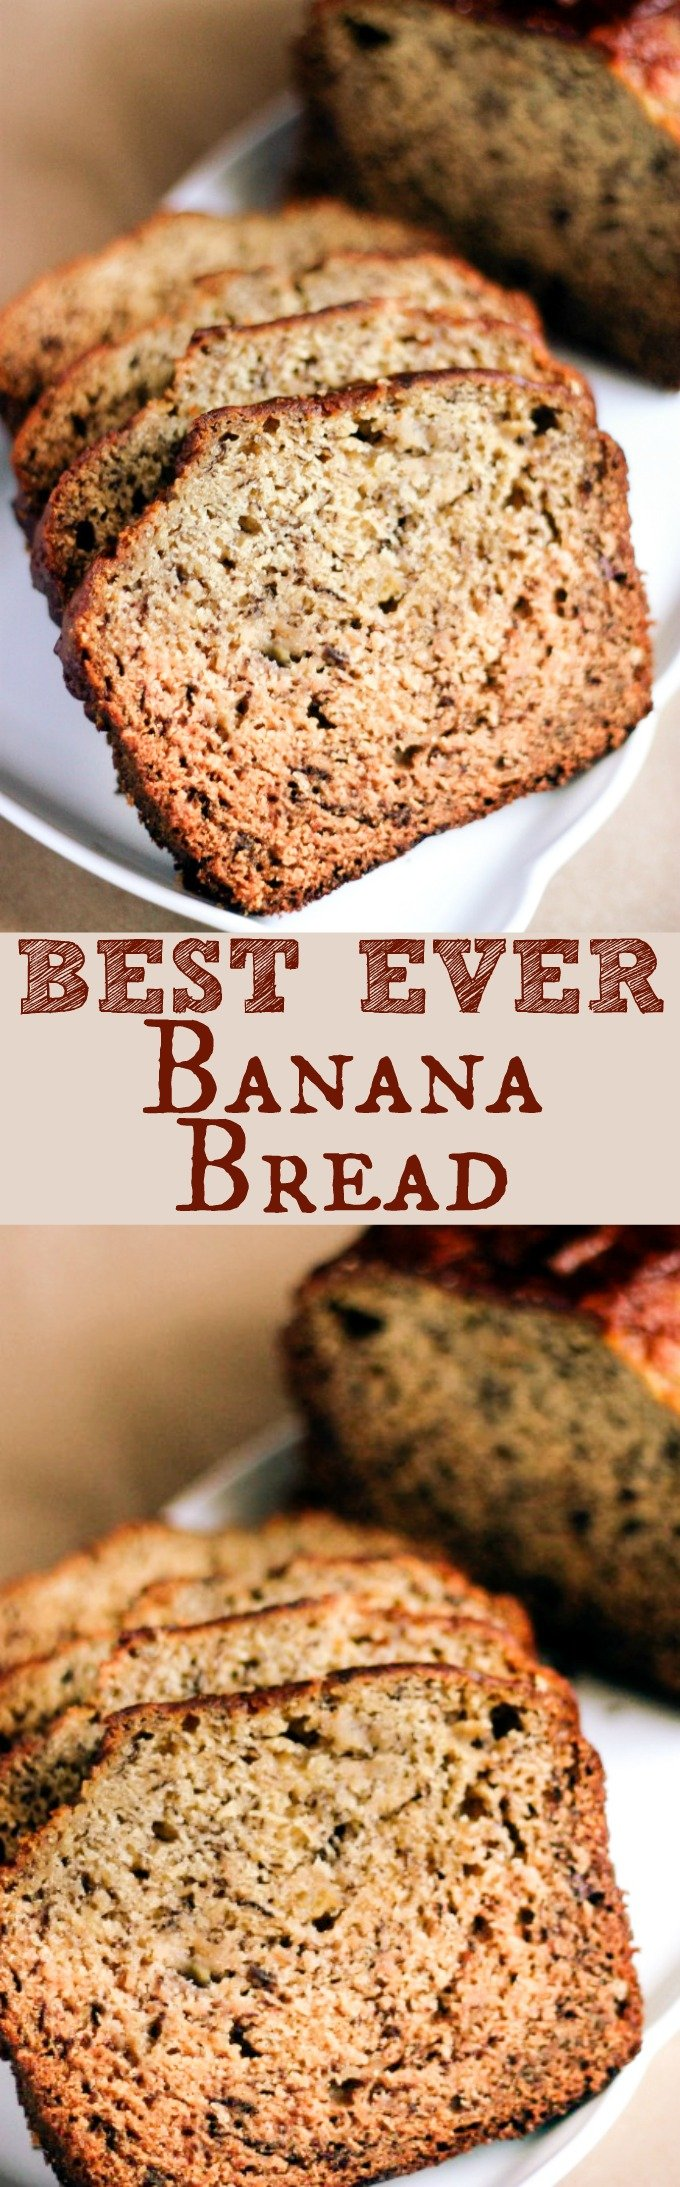 This is the Best Banana Bread EVER!!! It's moist, delicious, and SO easy to make! With only a handful of ingredients needed, this whips up in no time!